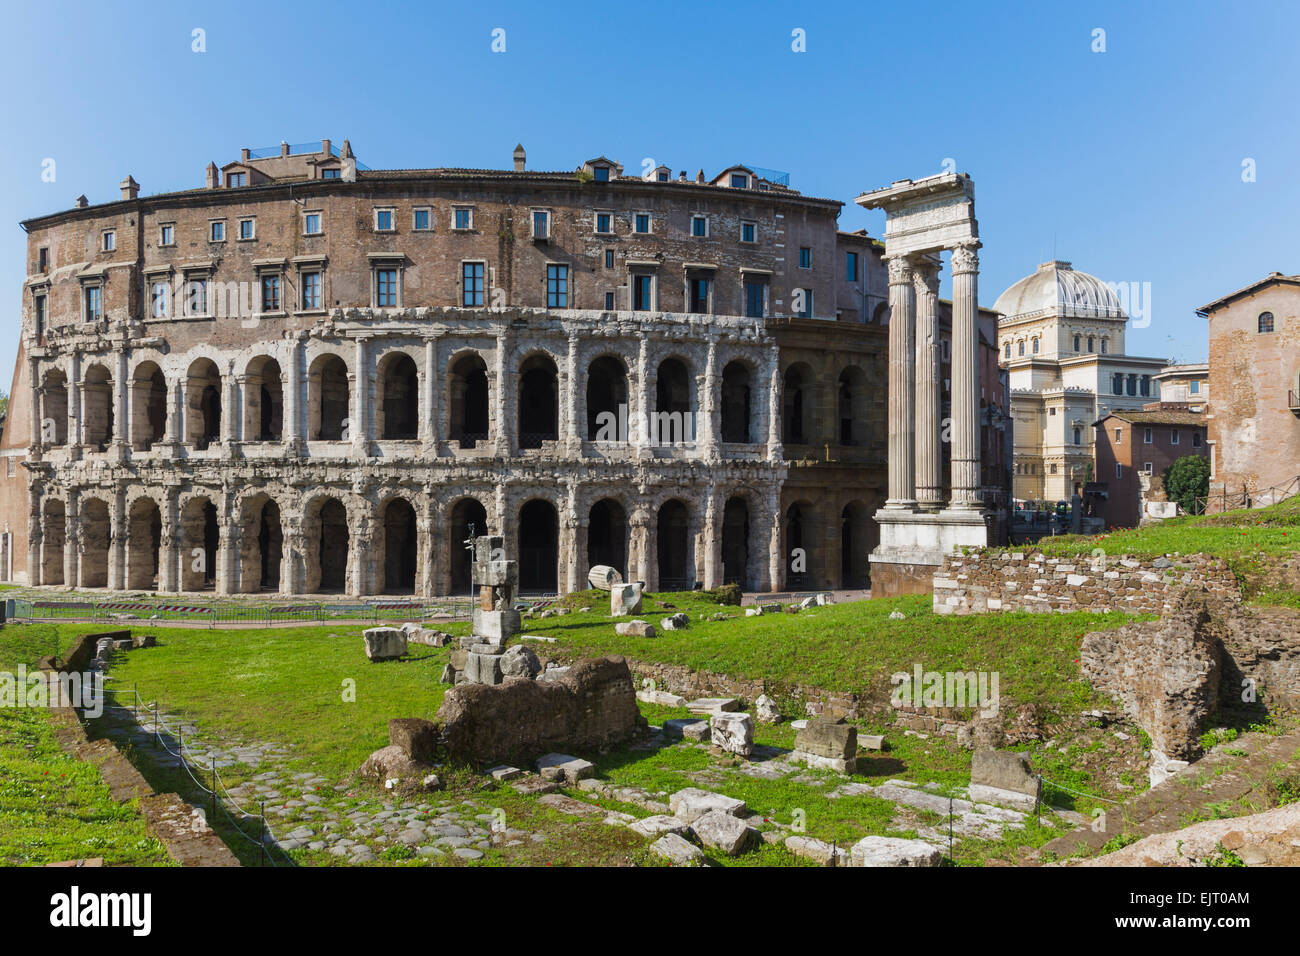 Rome, Italy.  The theatre of Marcellus, left, and the temple of Apollo, right. - Stock Image